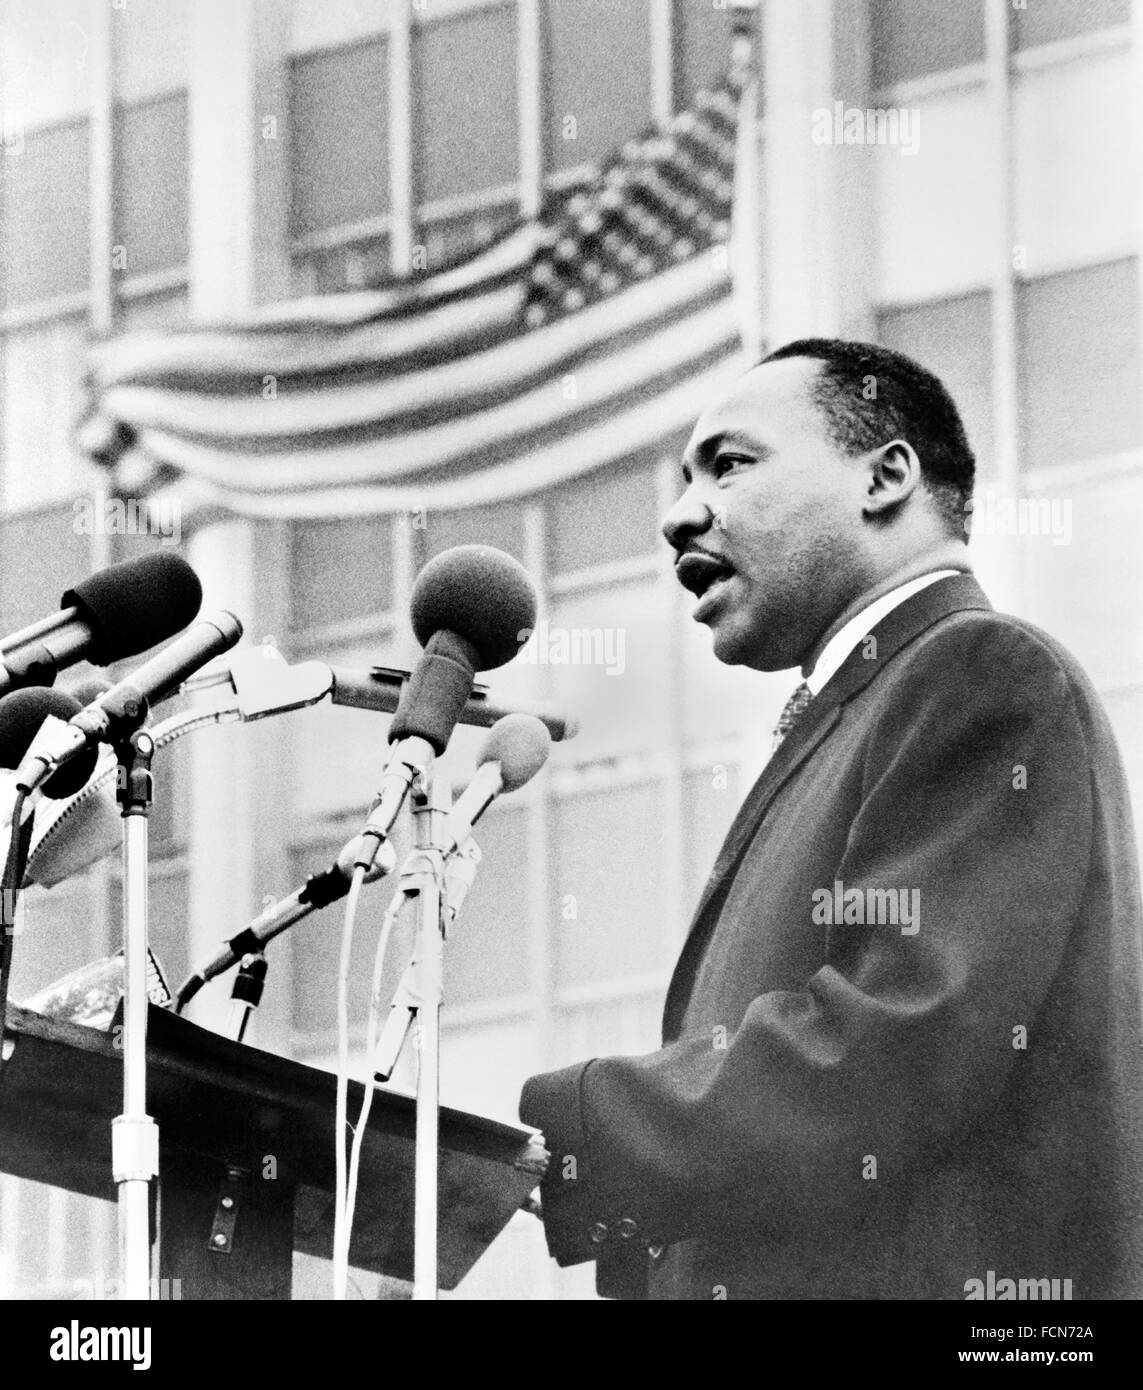 Martin Luther King. Dr  Martin Luther King Jr speaking at an anti-war demonstration in New York City, 1967 - Stock Image